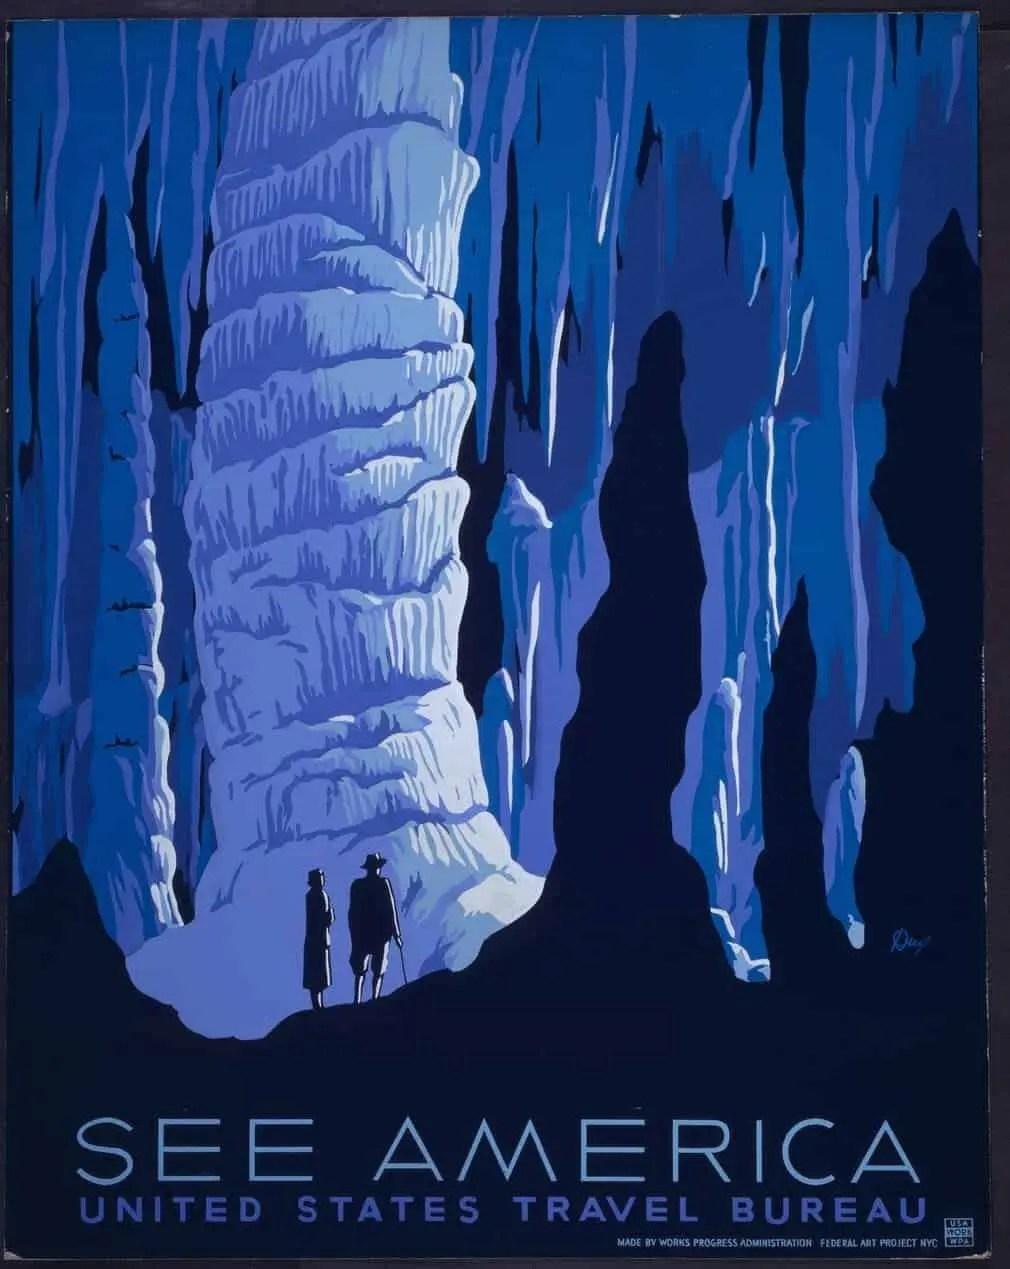 Poster promoting tourism in America, late 1930s.